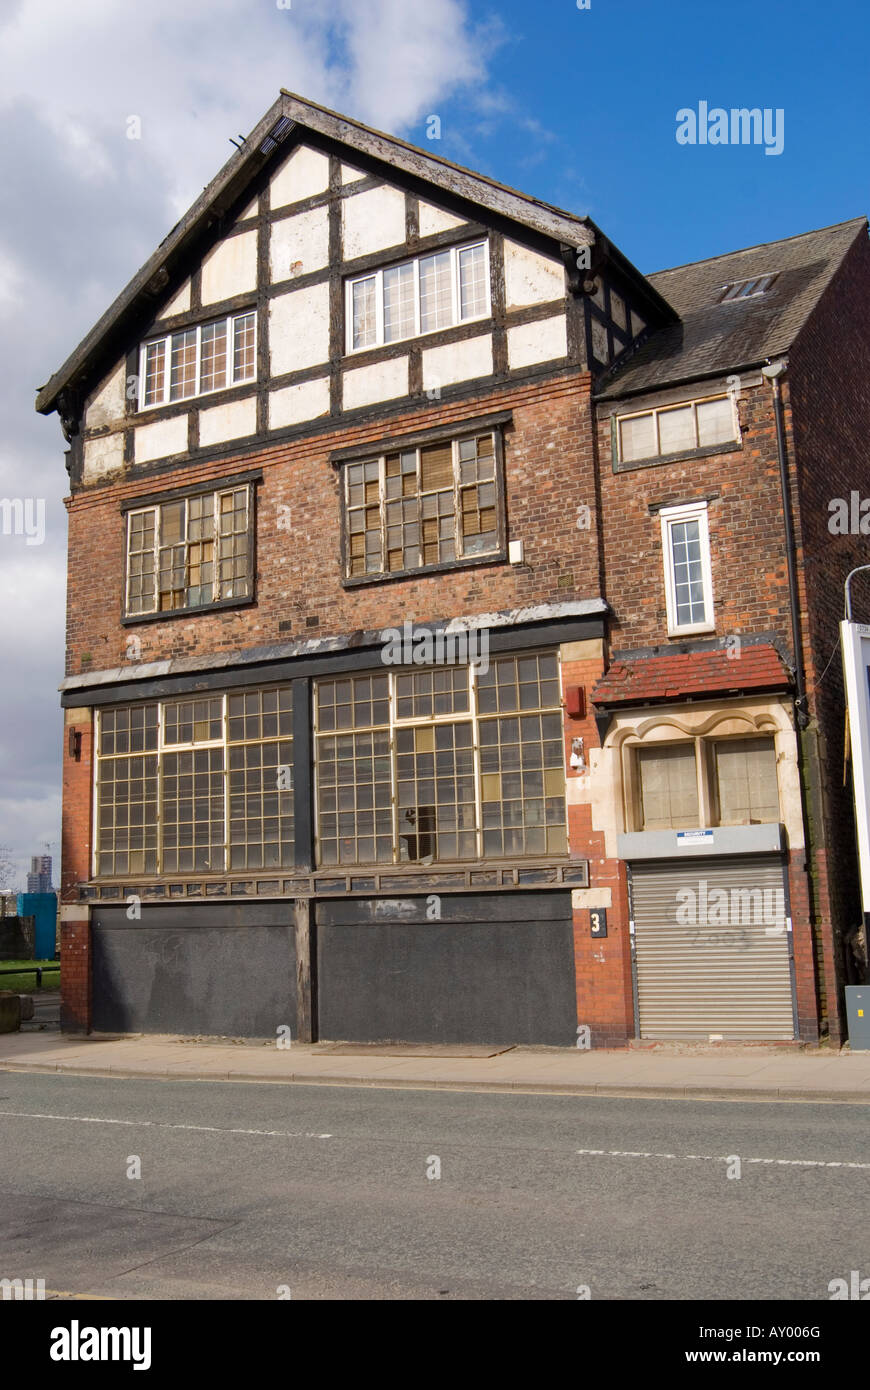 Public house in Pollard Street East Manchester in state of disrepair and awaiting regeneration. - Stock Image